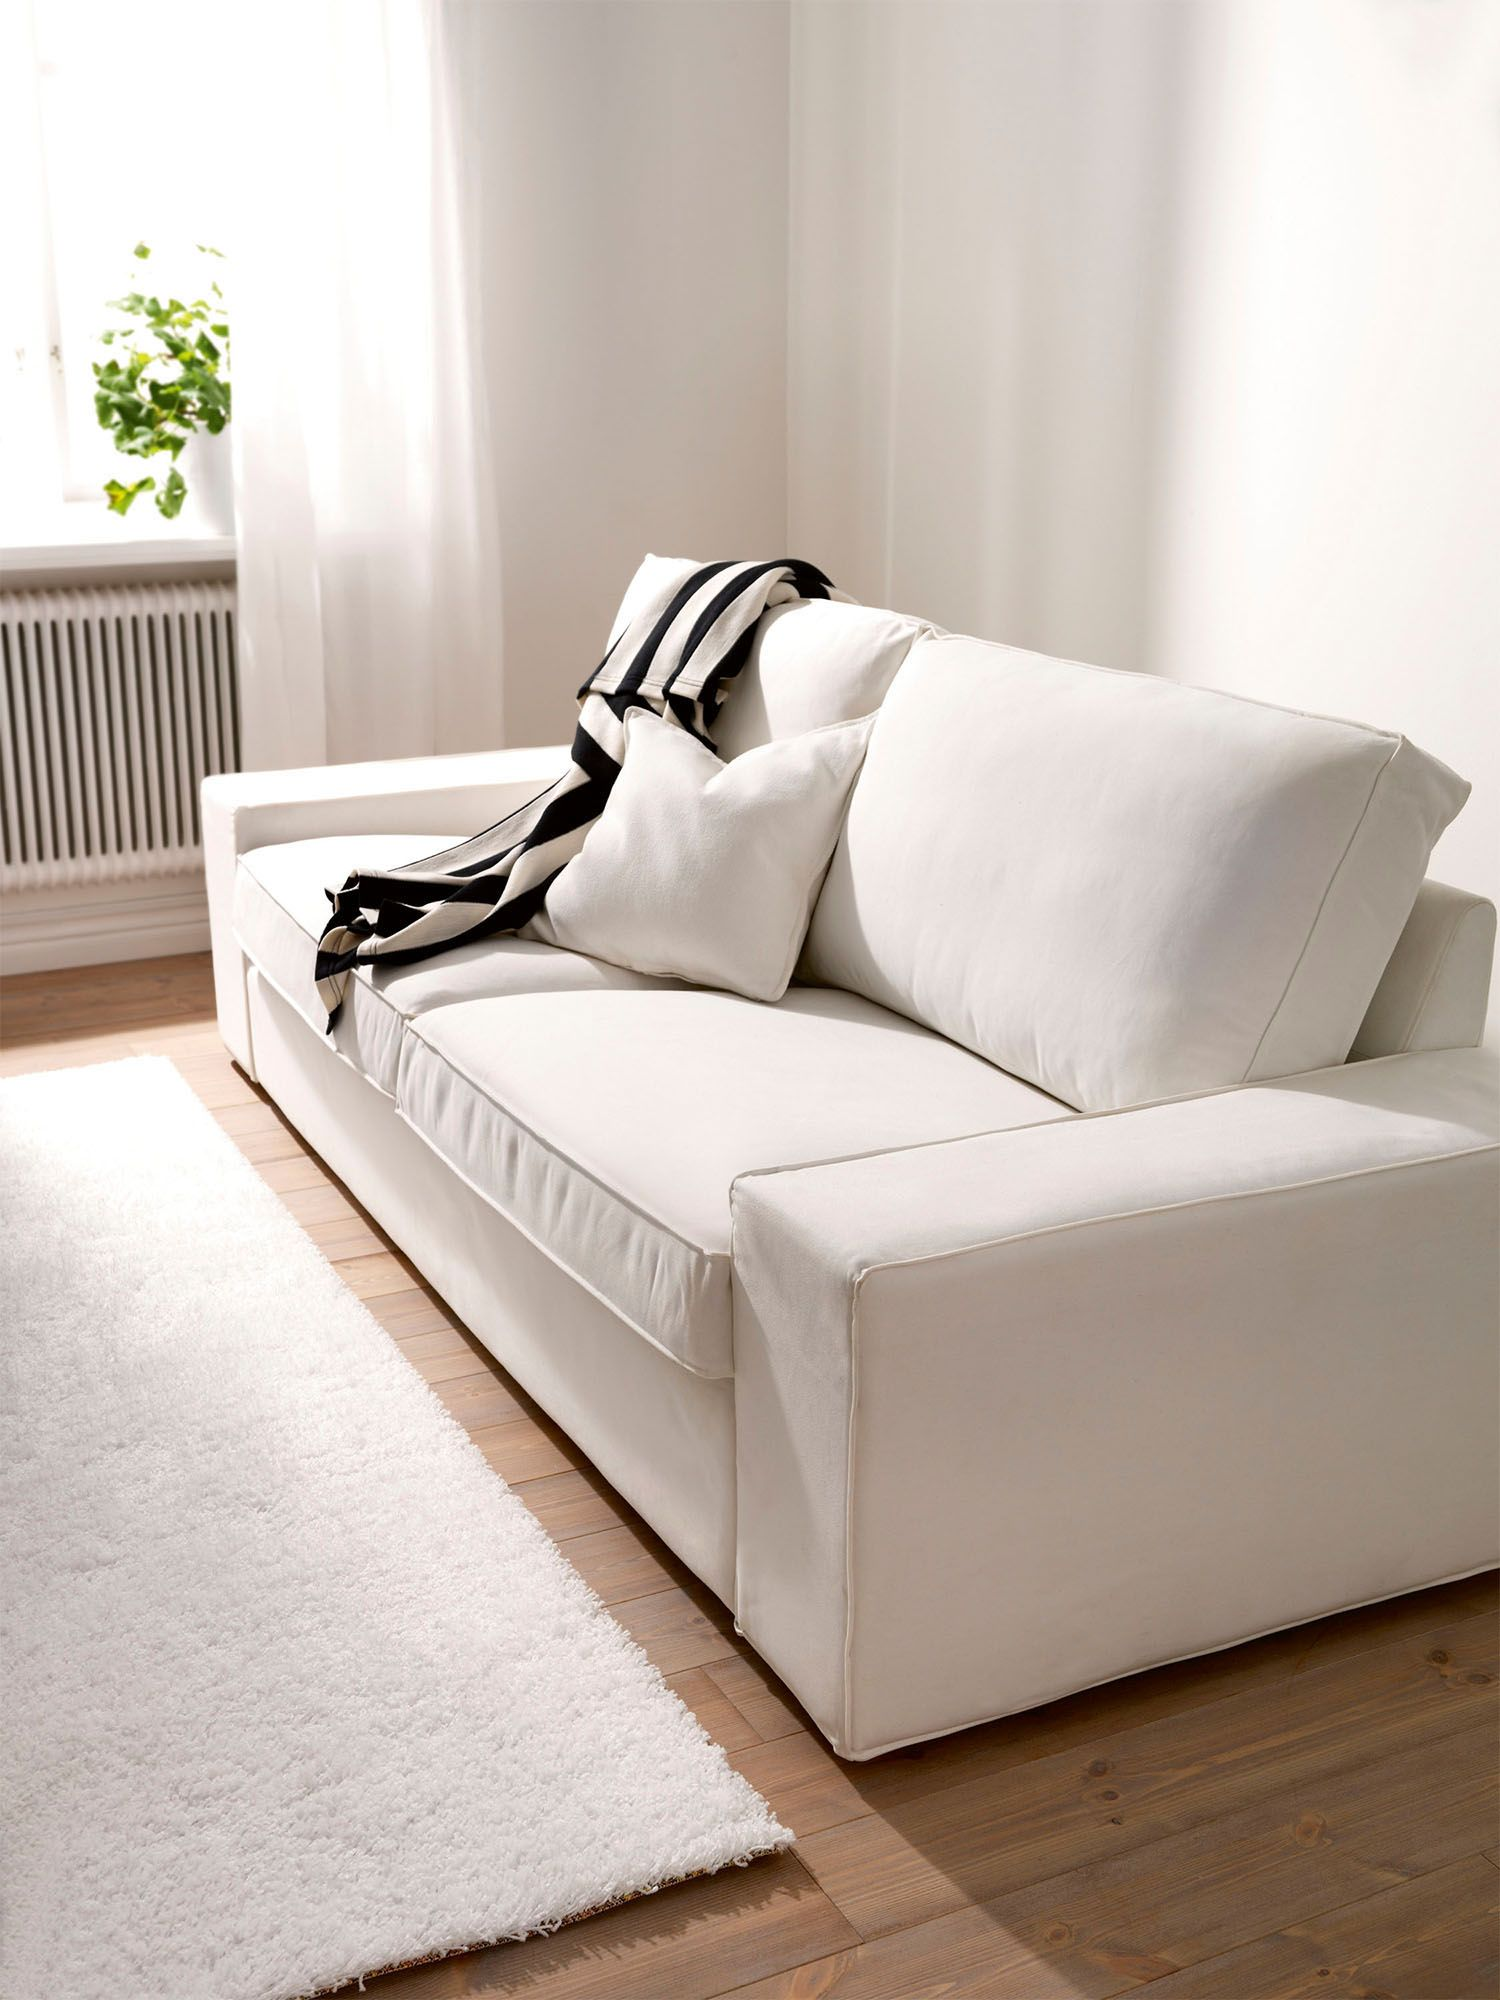 Superb Kivik Affordable Comfy Couch For The Home Ikea Sofa Pdpeps Interior Chair Design Pdpepsorg